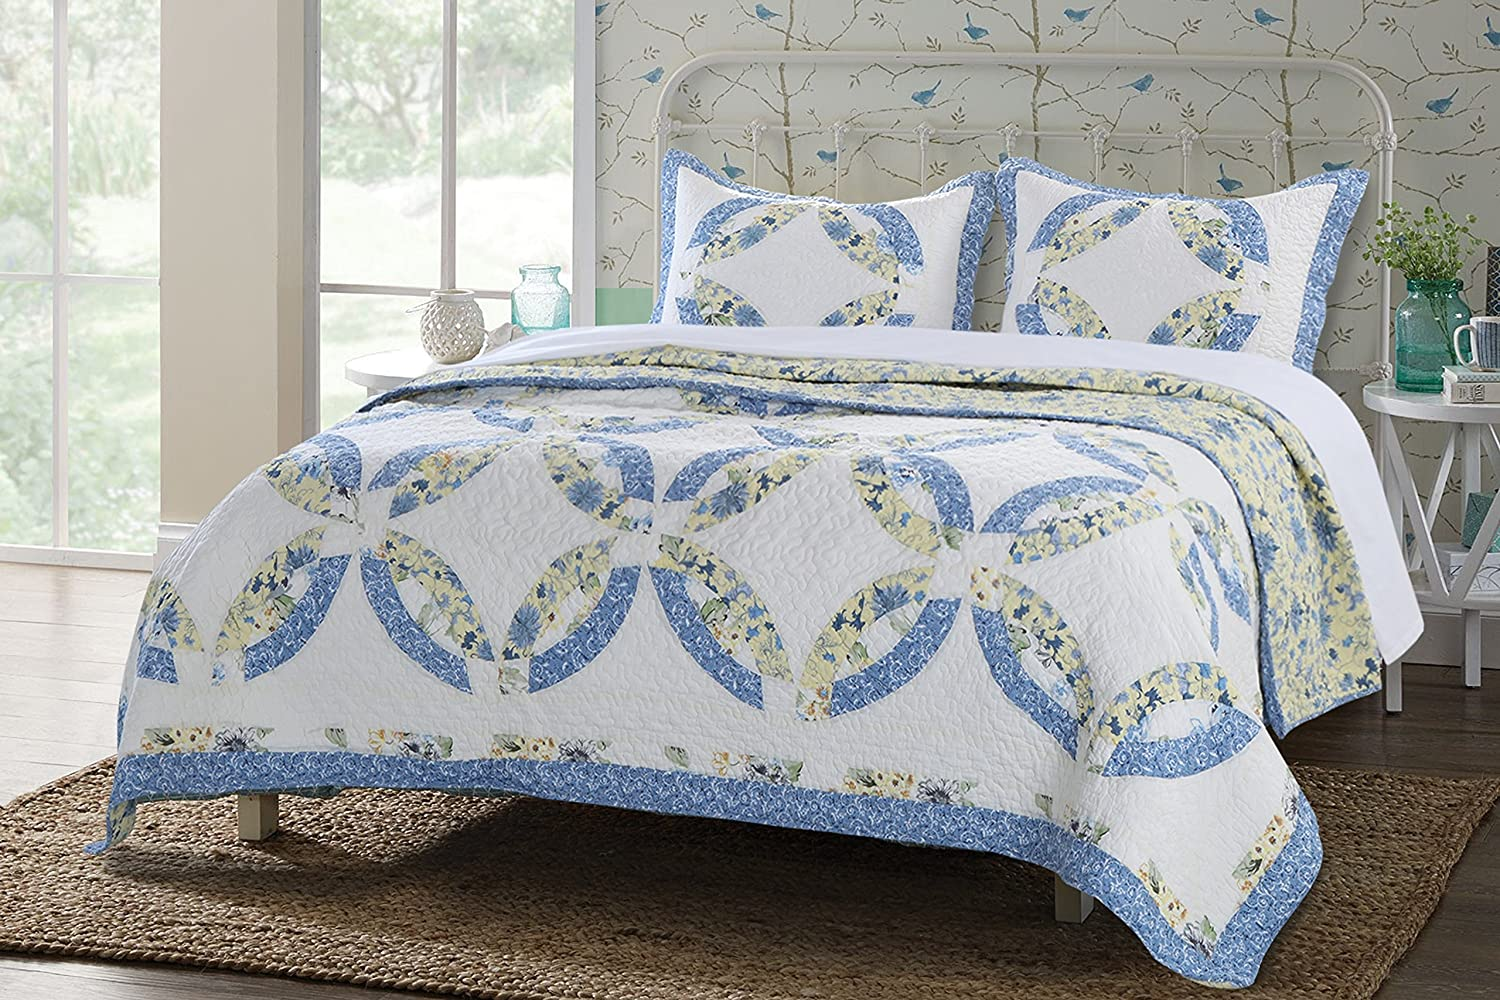 Greenland Home 3 Piece Forever Quilt Set, Full/Queen